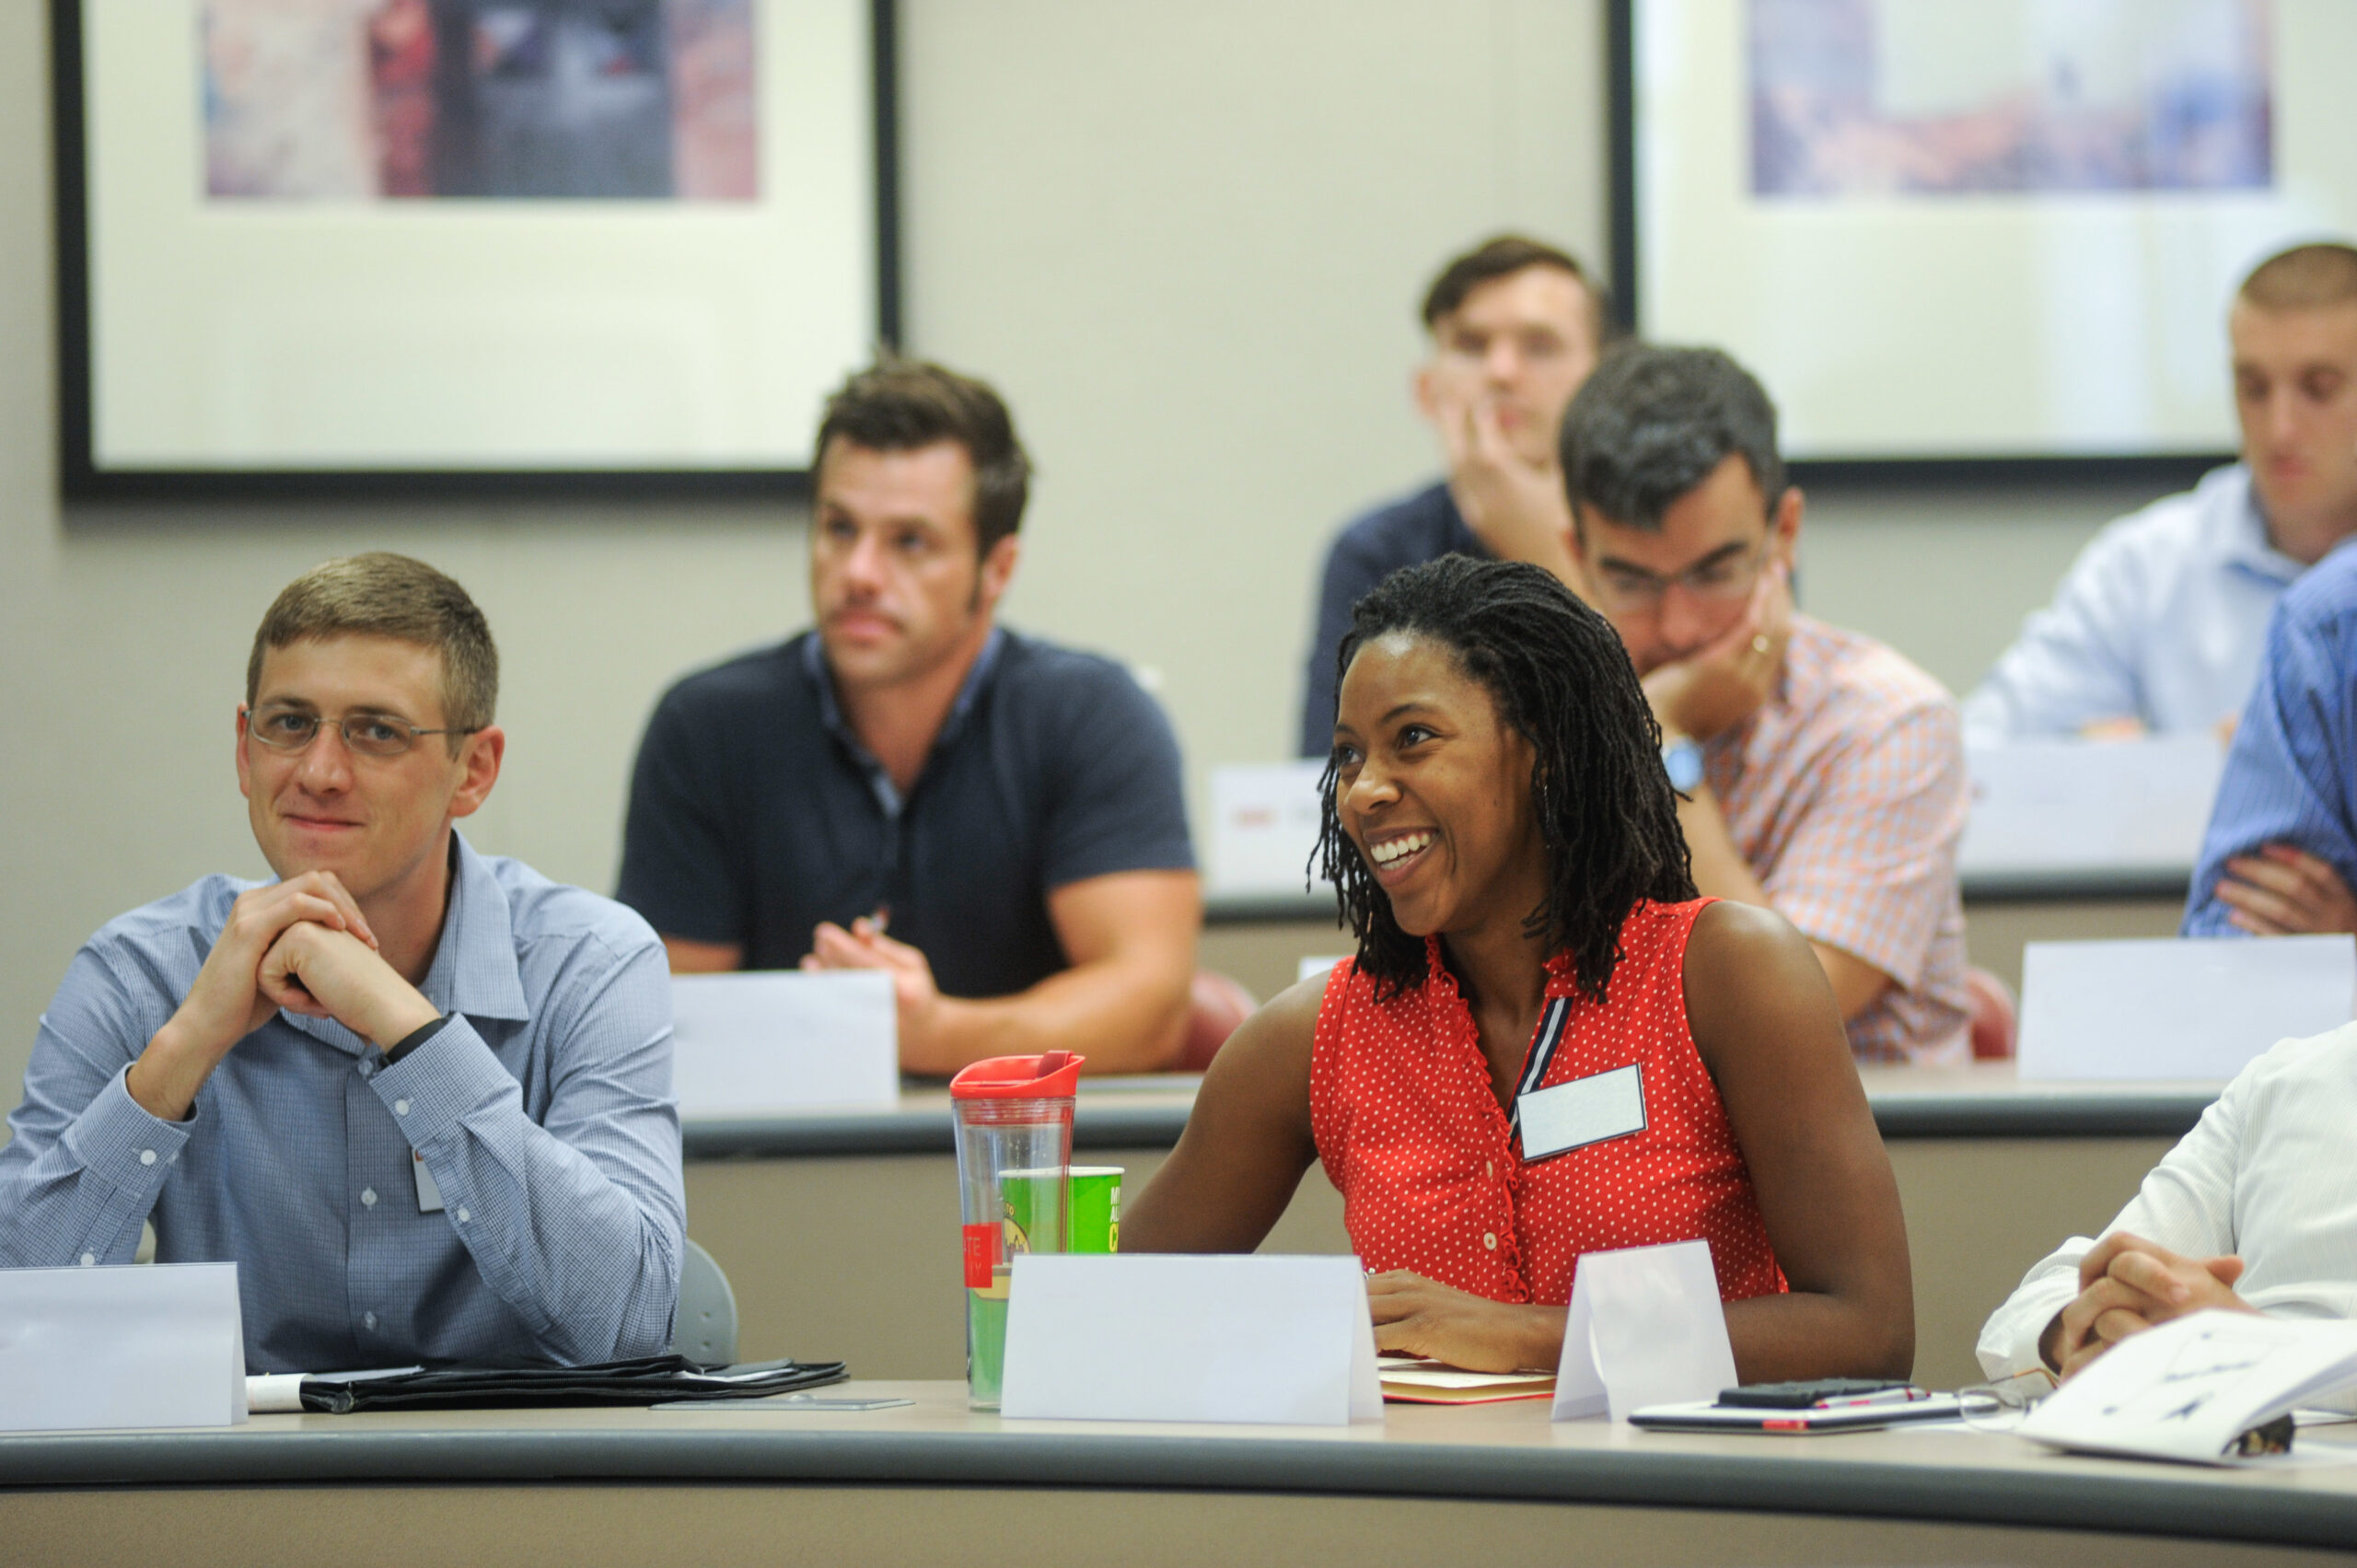 Students in a classroom setting at NCState.